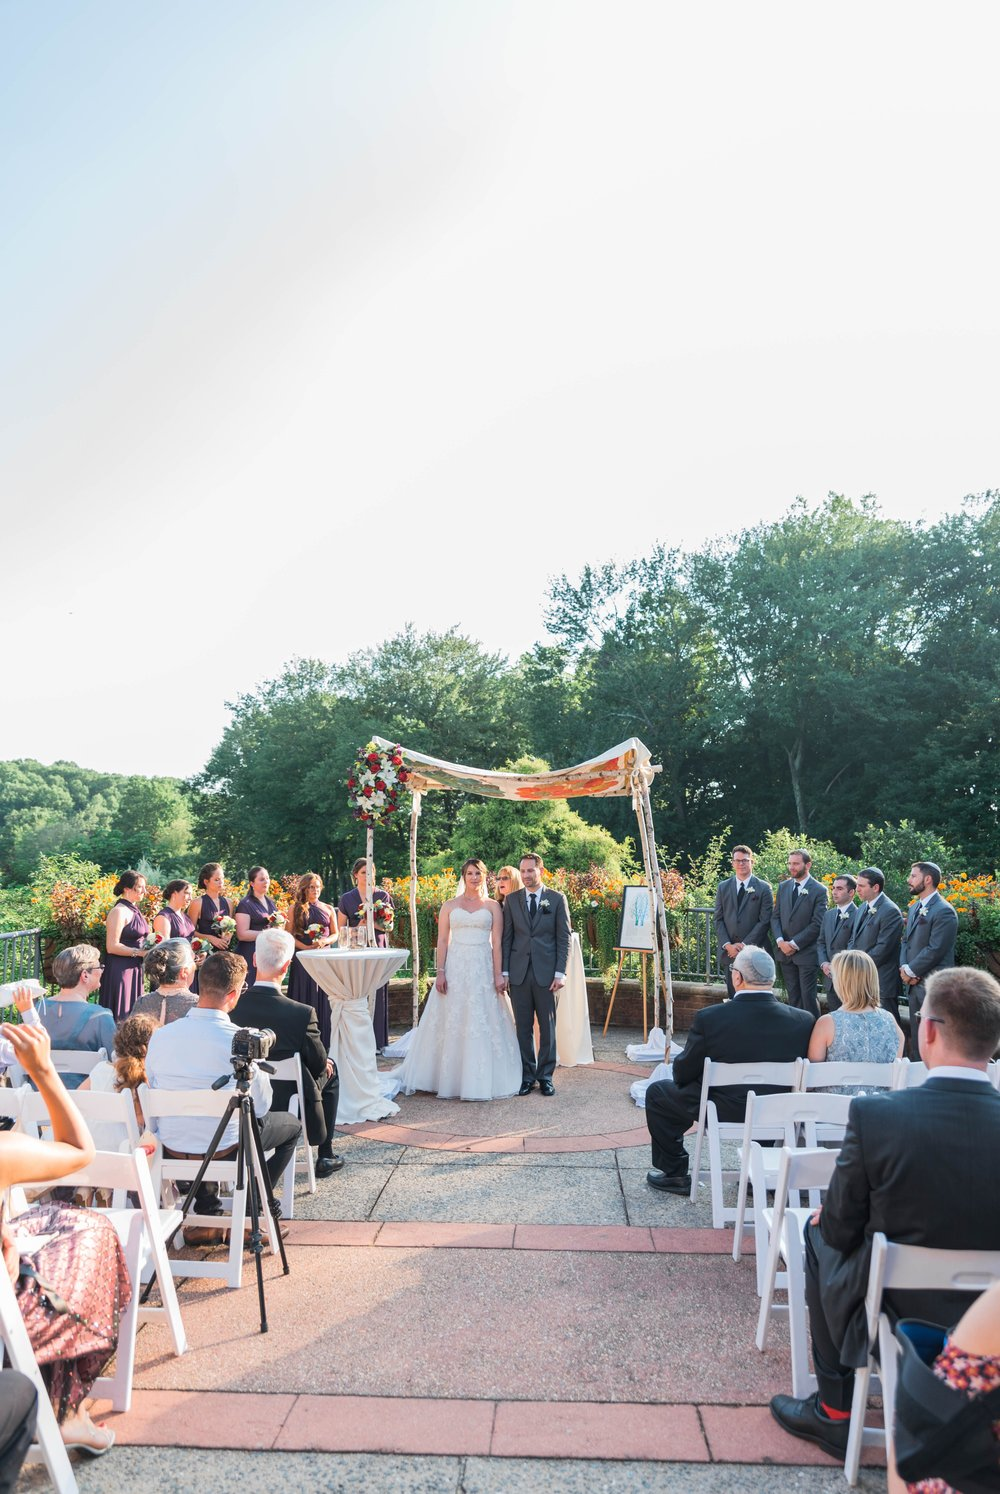 TheAtriumatMeadowlark_Virginiawedding photographer_lynchburgweddingphotographer_DCweddingPhotographer_KristinAaron 29.jpg